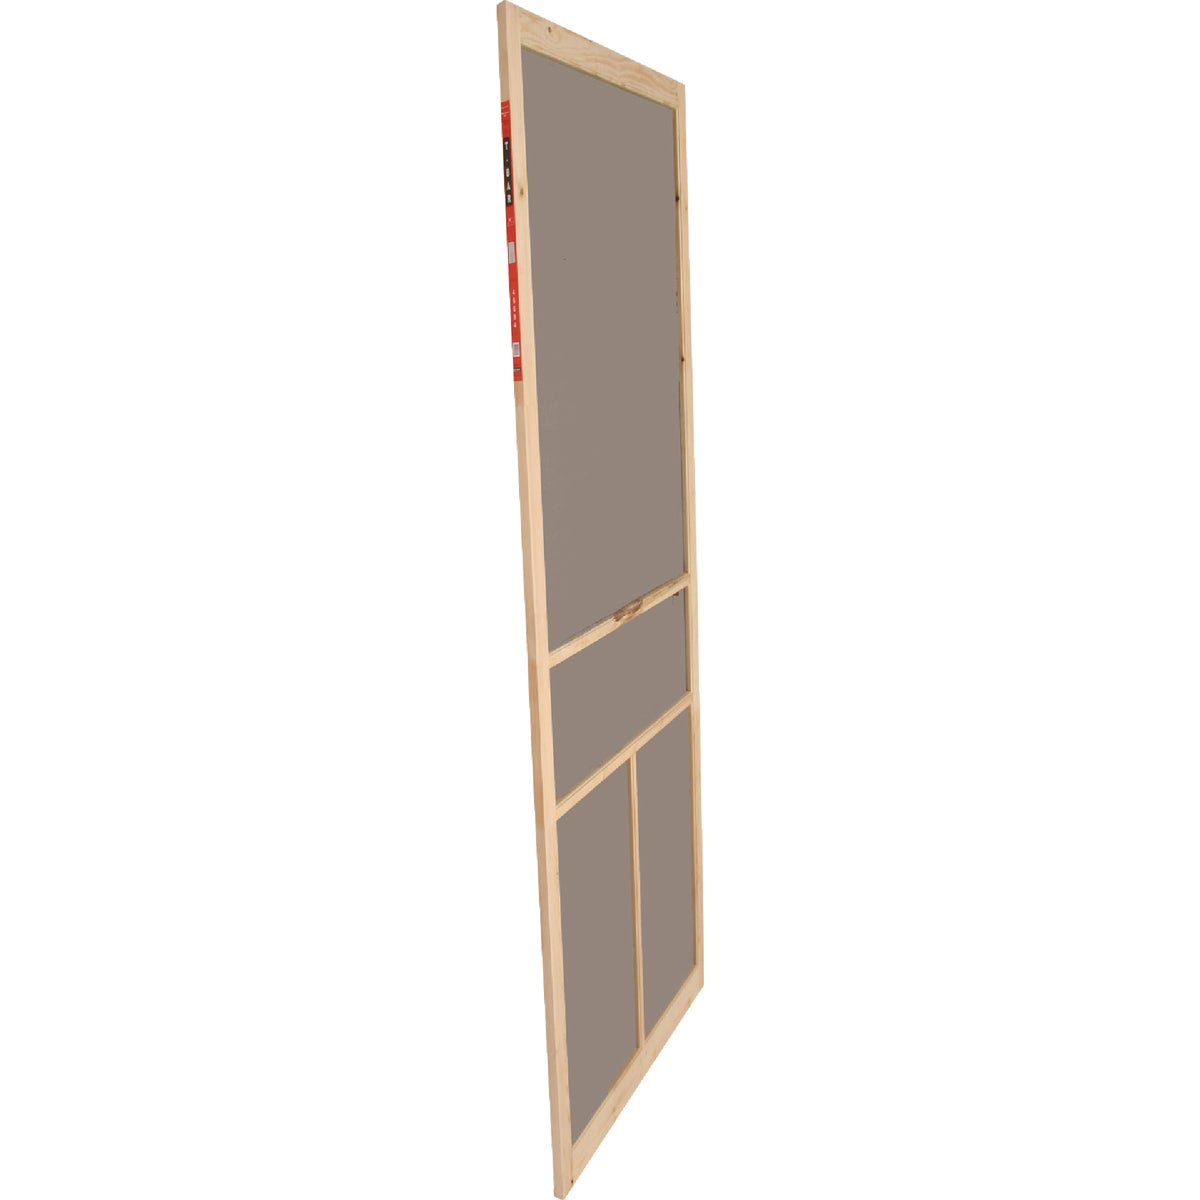 "36"" T-BAR SCREEN DOOR - DSTB36 by Snavely Internatl"